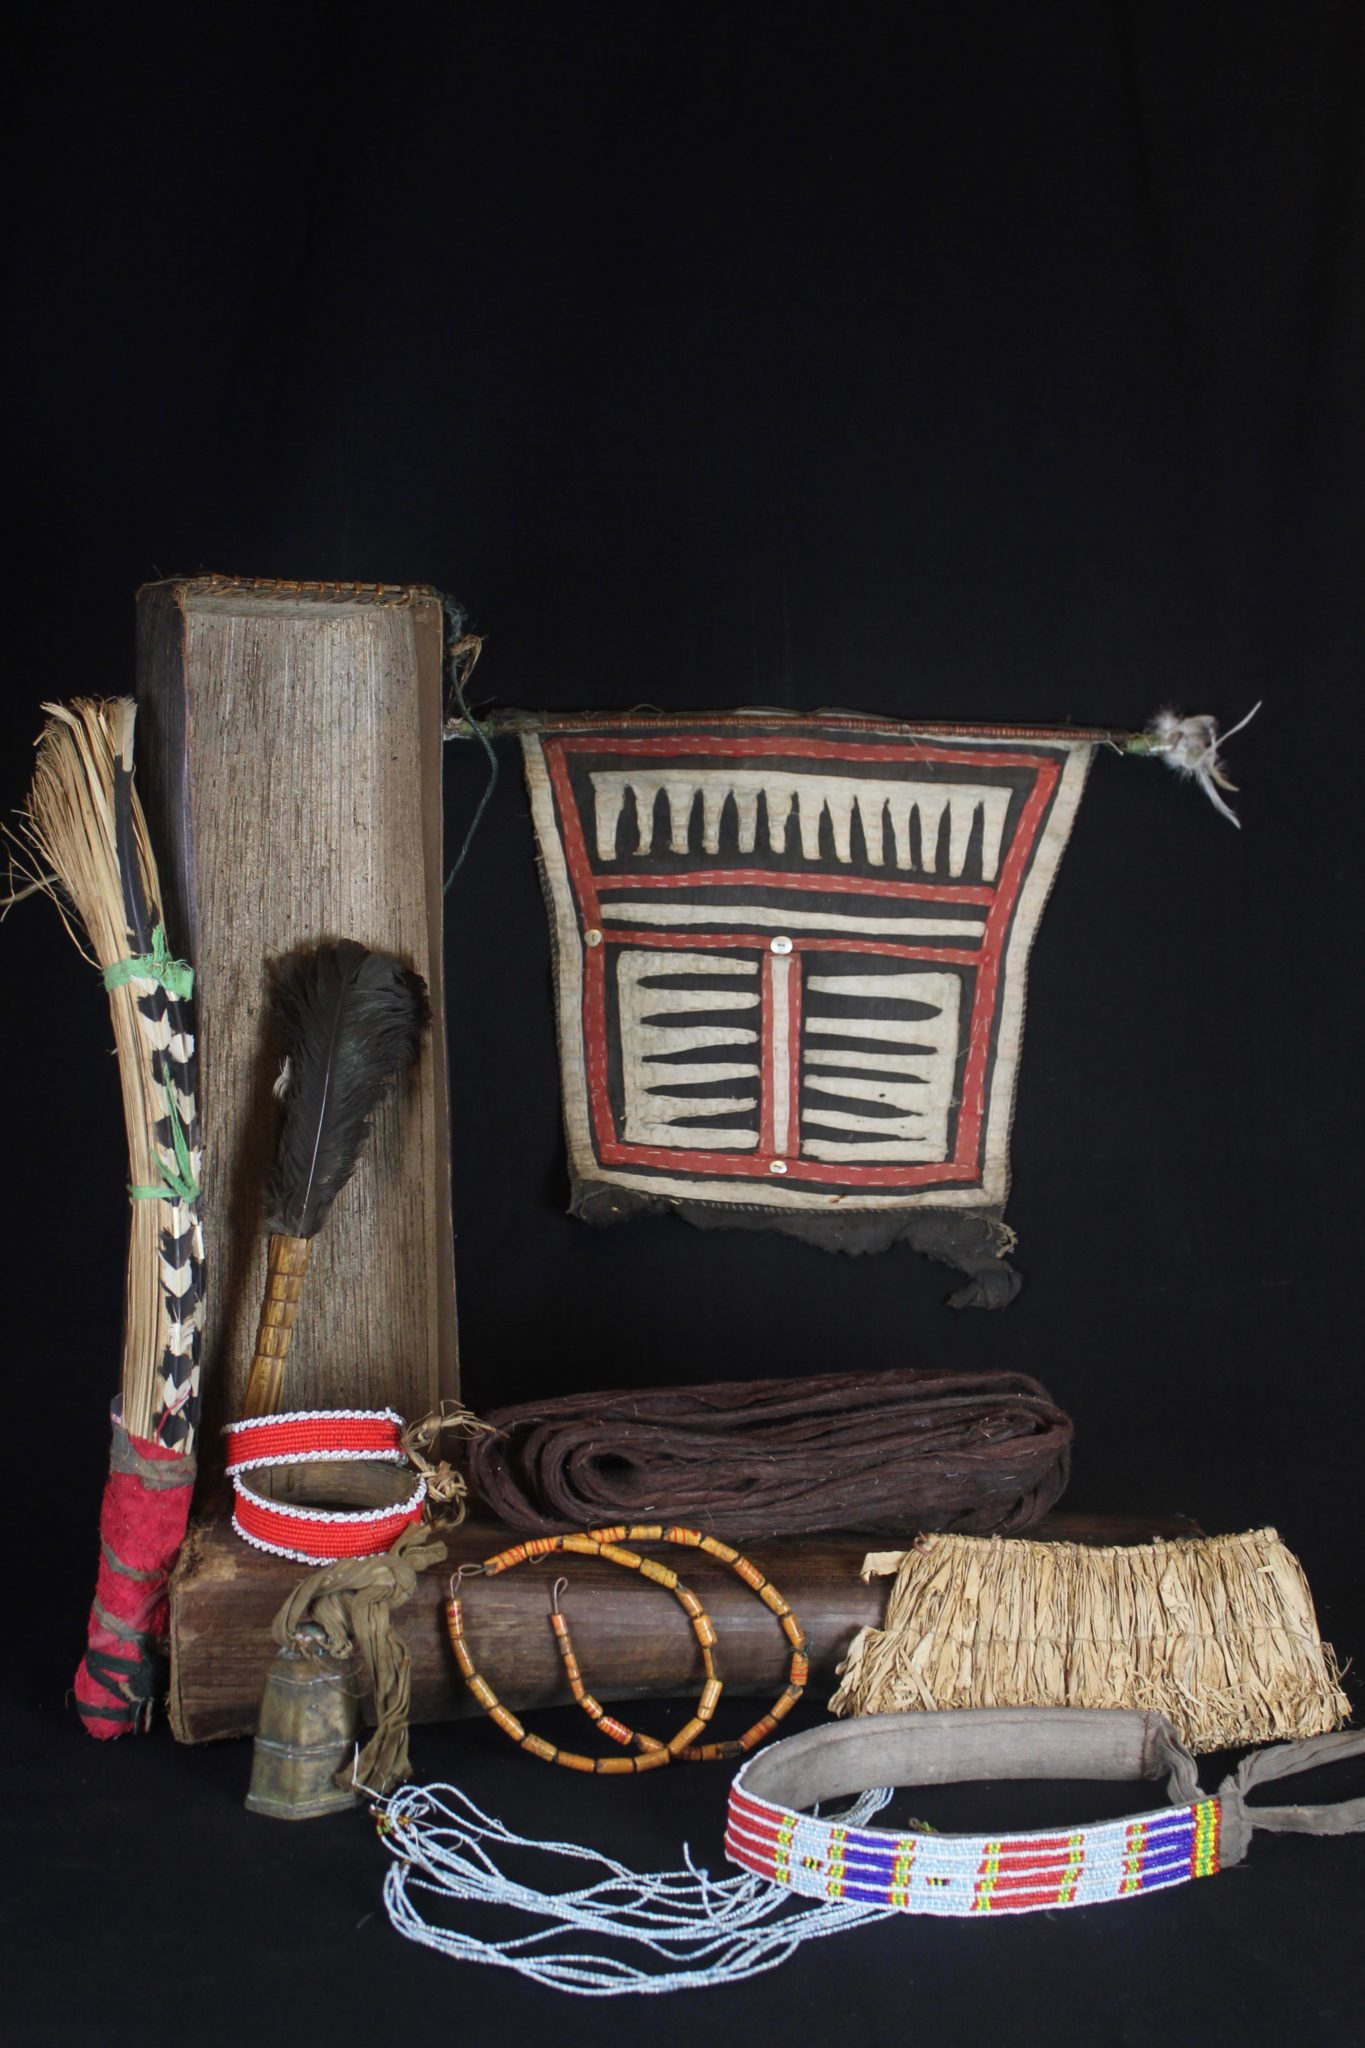 "Shaman Kit Box Contents, Mentawai Islands, Sumatra, Indonesia, Mentawai tribe Early to mid 20th c, Case: sago palm leaf box, braided rattan, Raffia wand handle and headband, feathers, European glass trade beads, cotton trade cloth, wood, bronze bell. Contents: costume (loincloth, jewelry, head gear) and wands. All items have a specific purpose - example: the beaded headband acts like antenna attracting spirits the shaman needs to contact. 5 ½"" x 7 ½"" x 30 ½"" $3600."